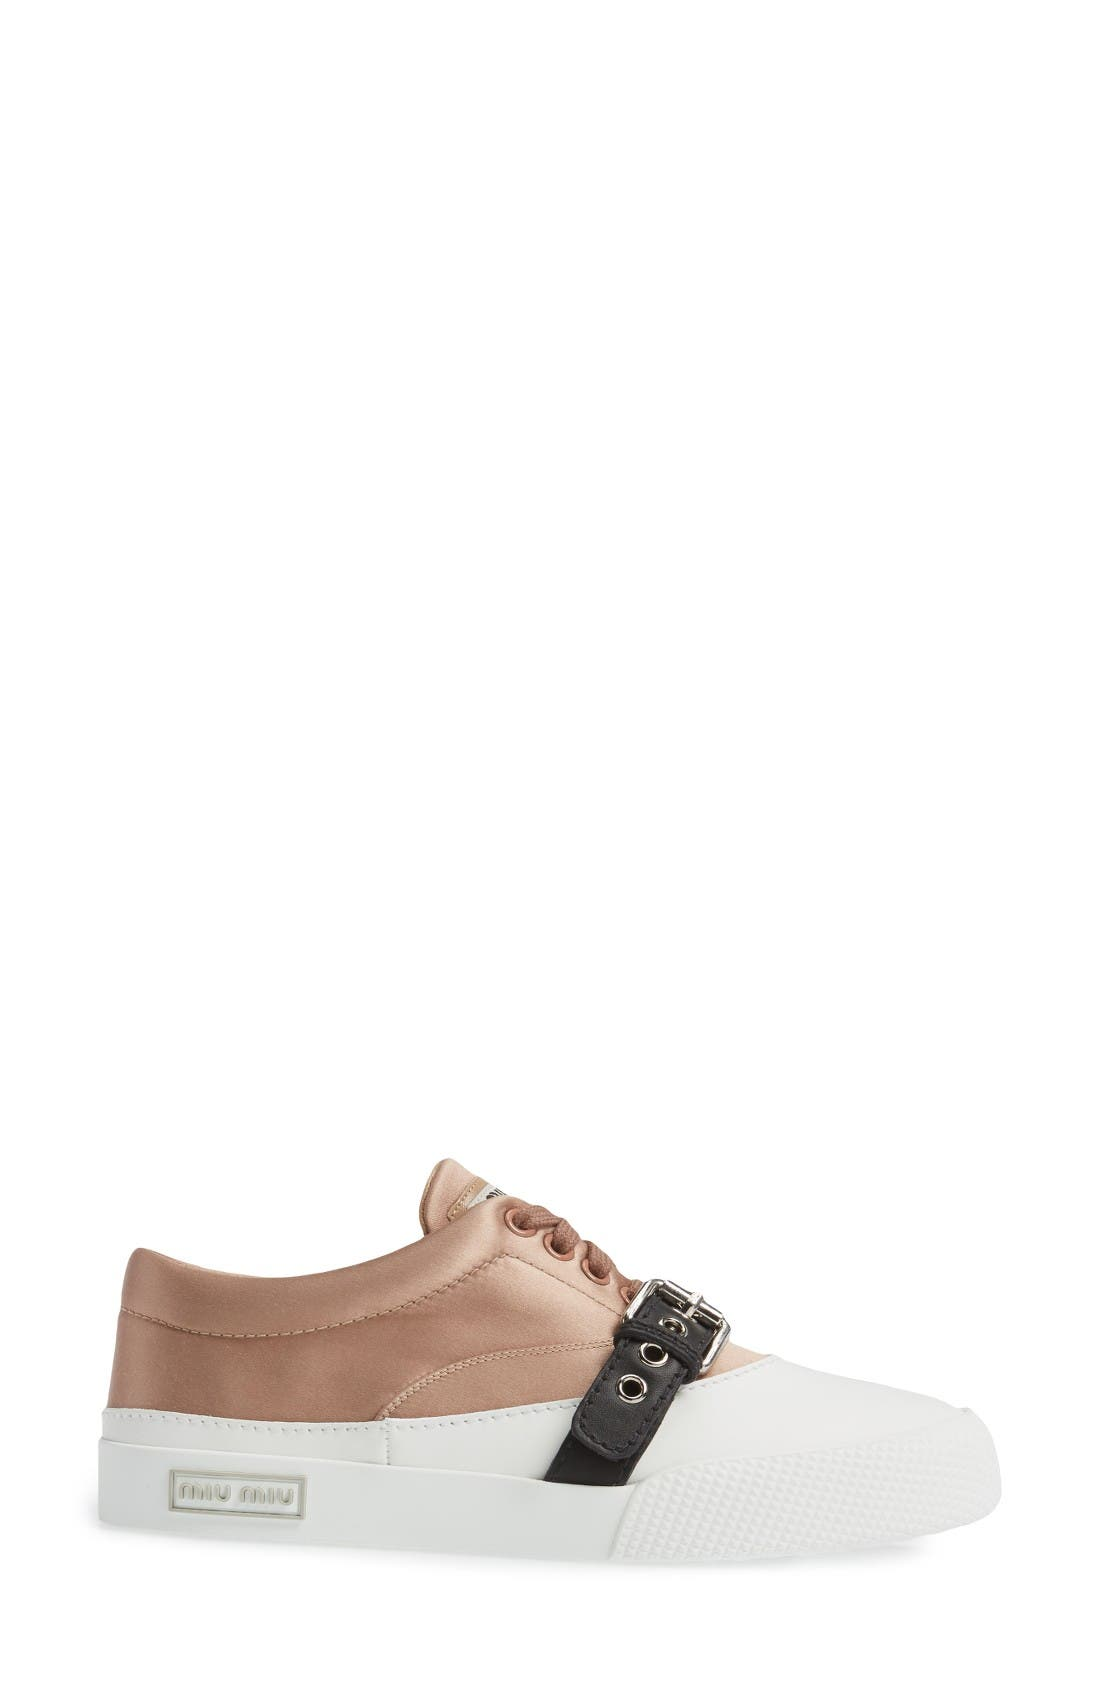 Alternate Image 4  - Miu Miu Belted Sneaker (Women)